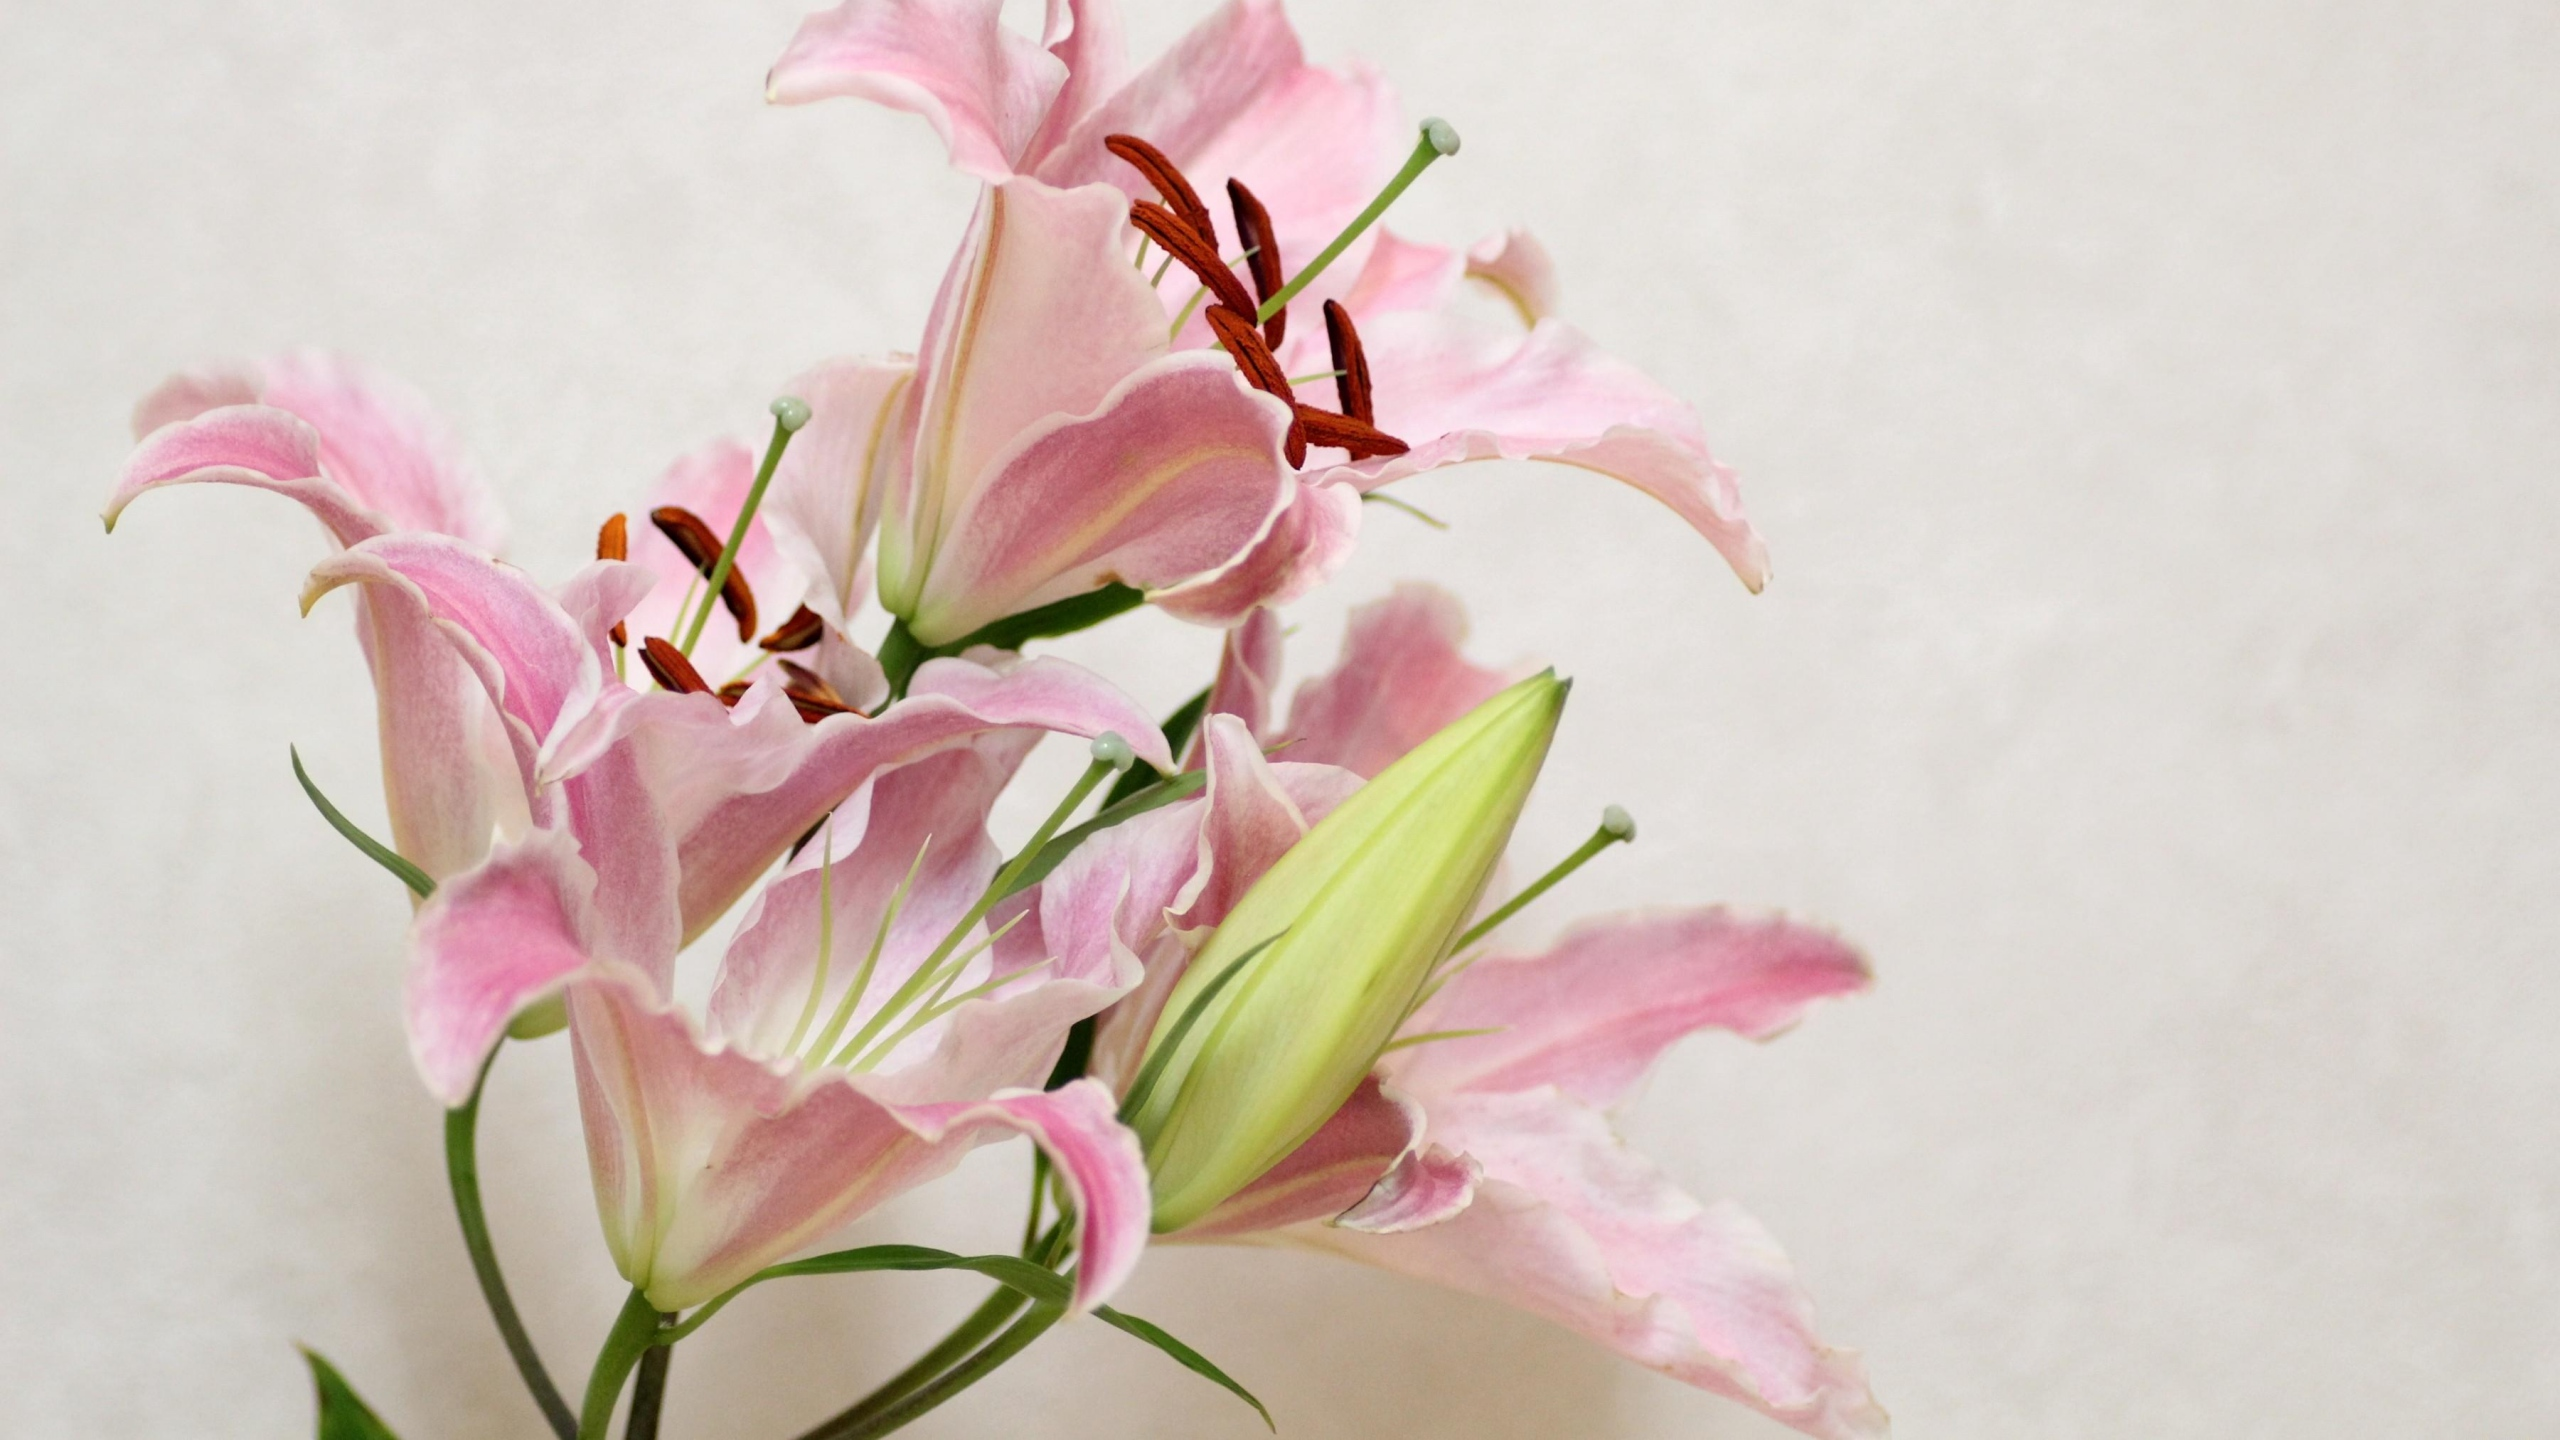 lily flowers wide wallpaper 50635